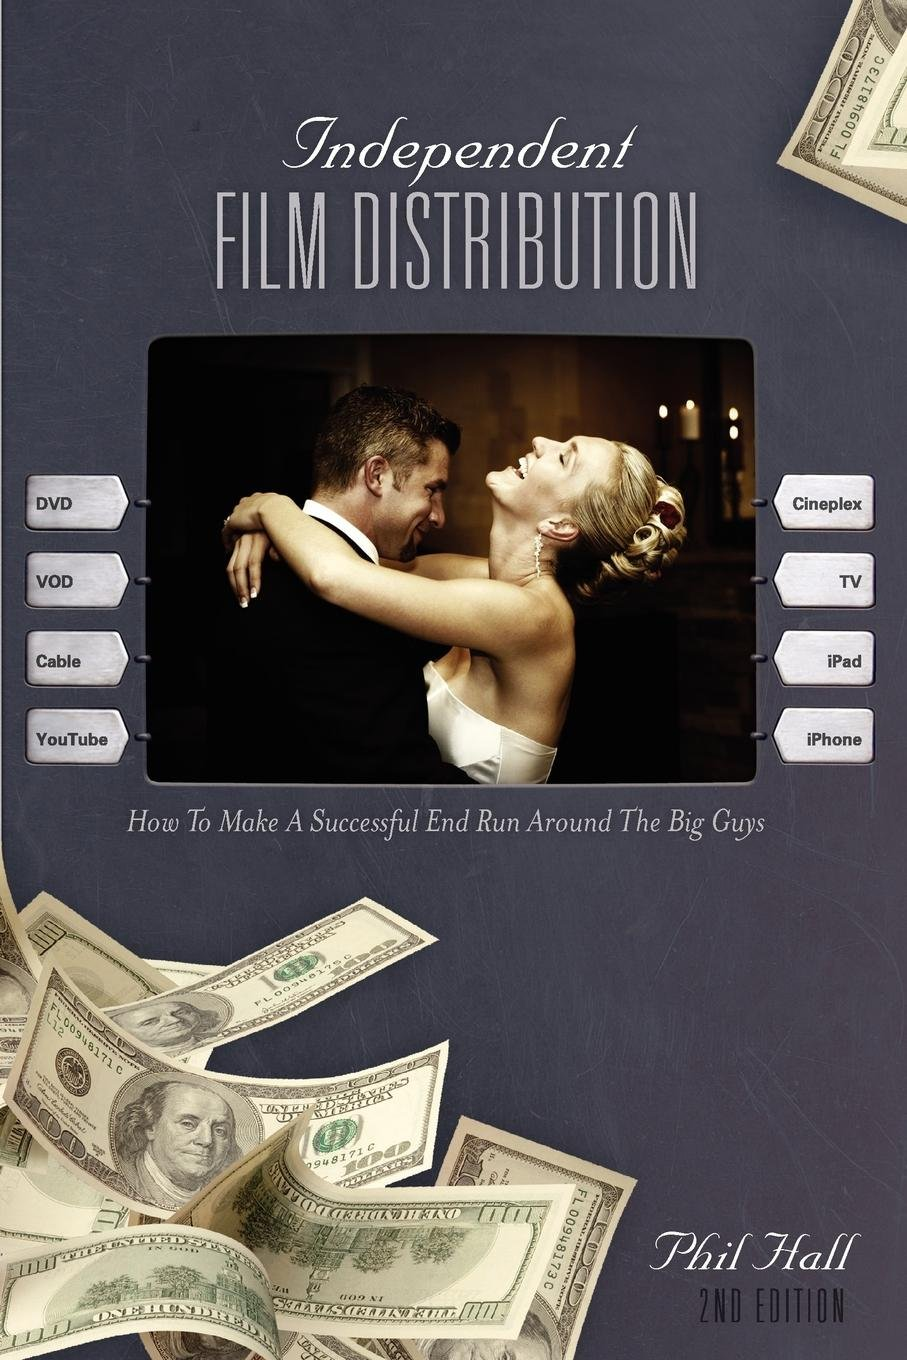 Independent Film Distribution: How to Make a Successful End